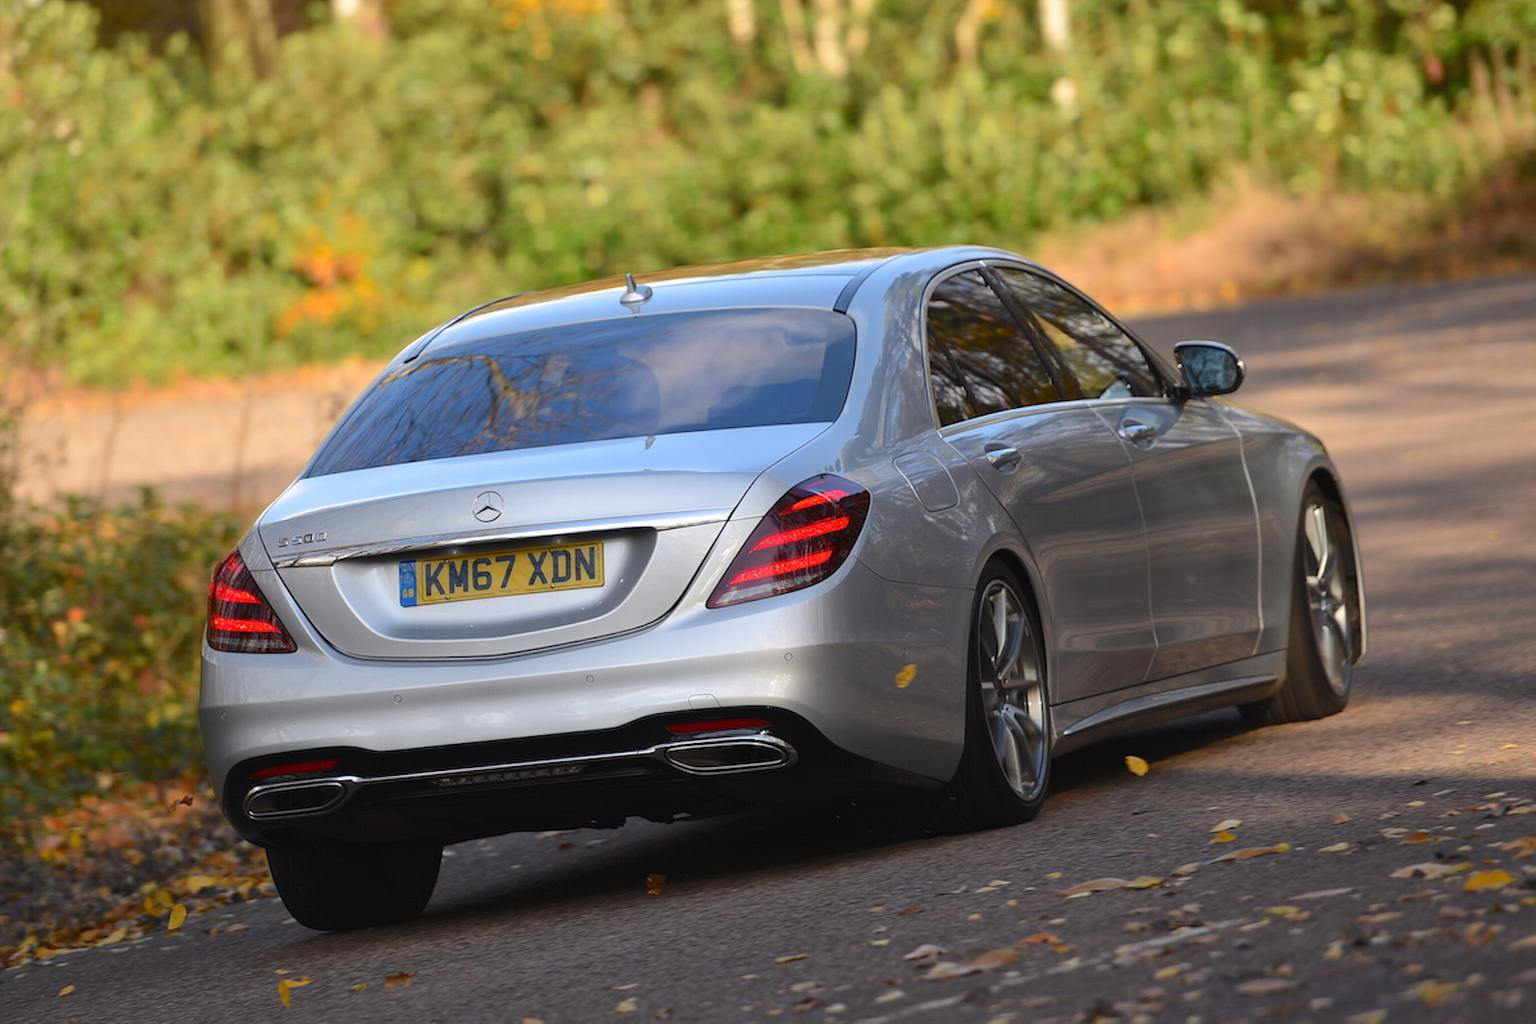 2017 Mercedes Benz S Cl S500 Review Price Specs And Release Date